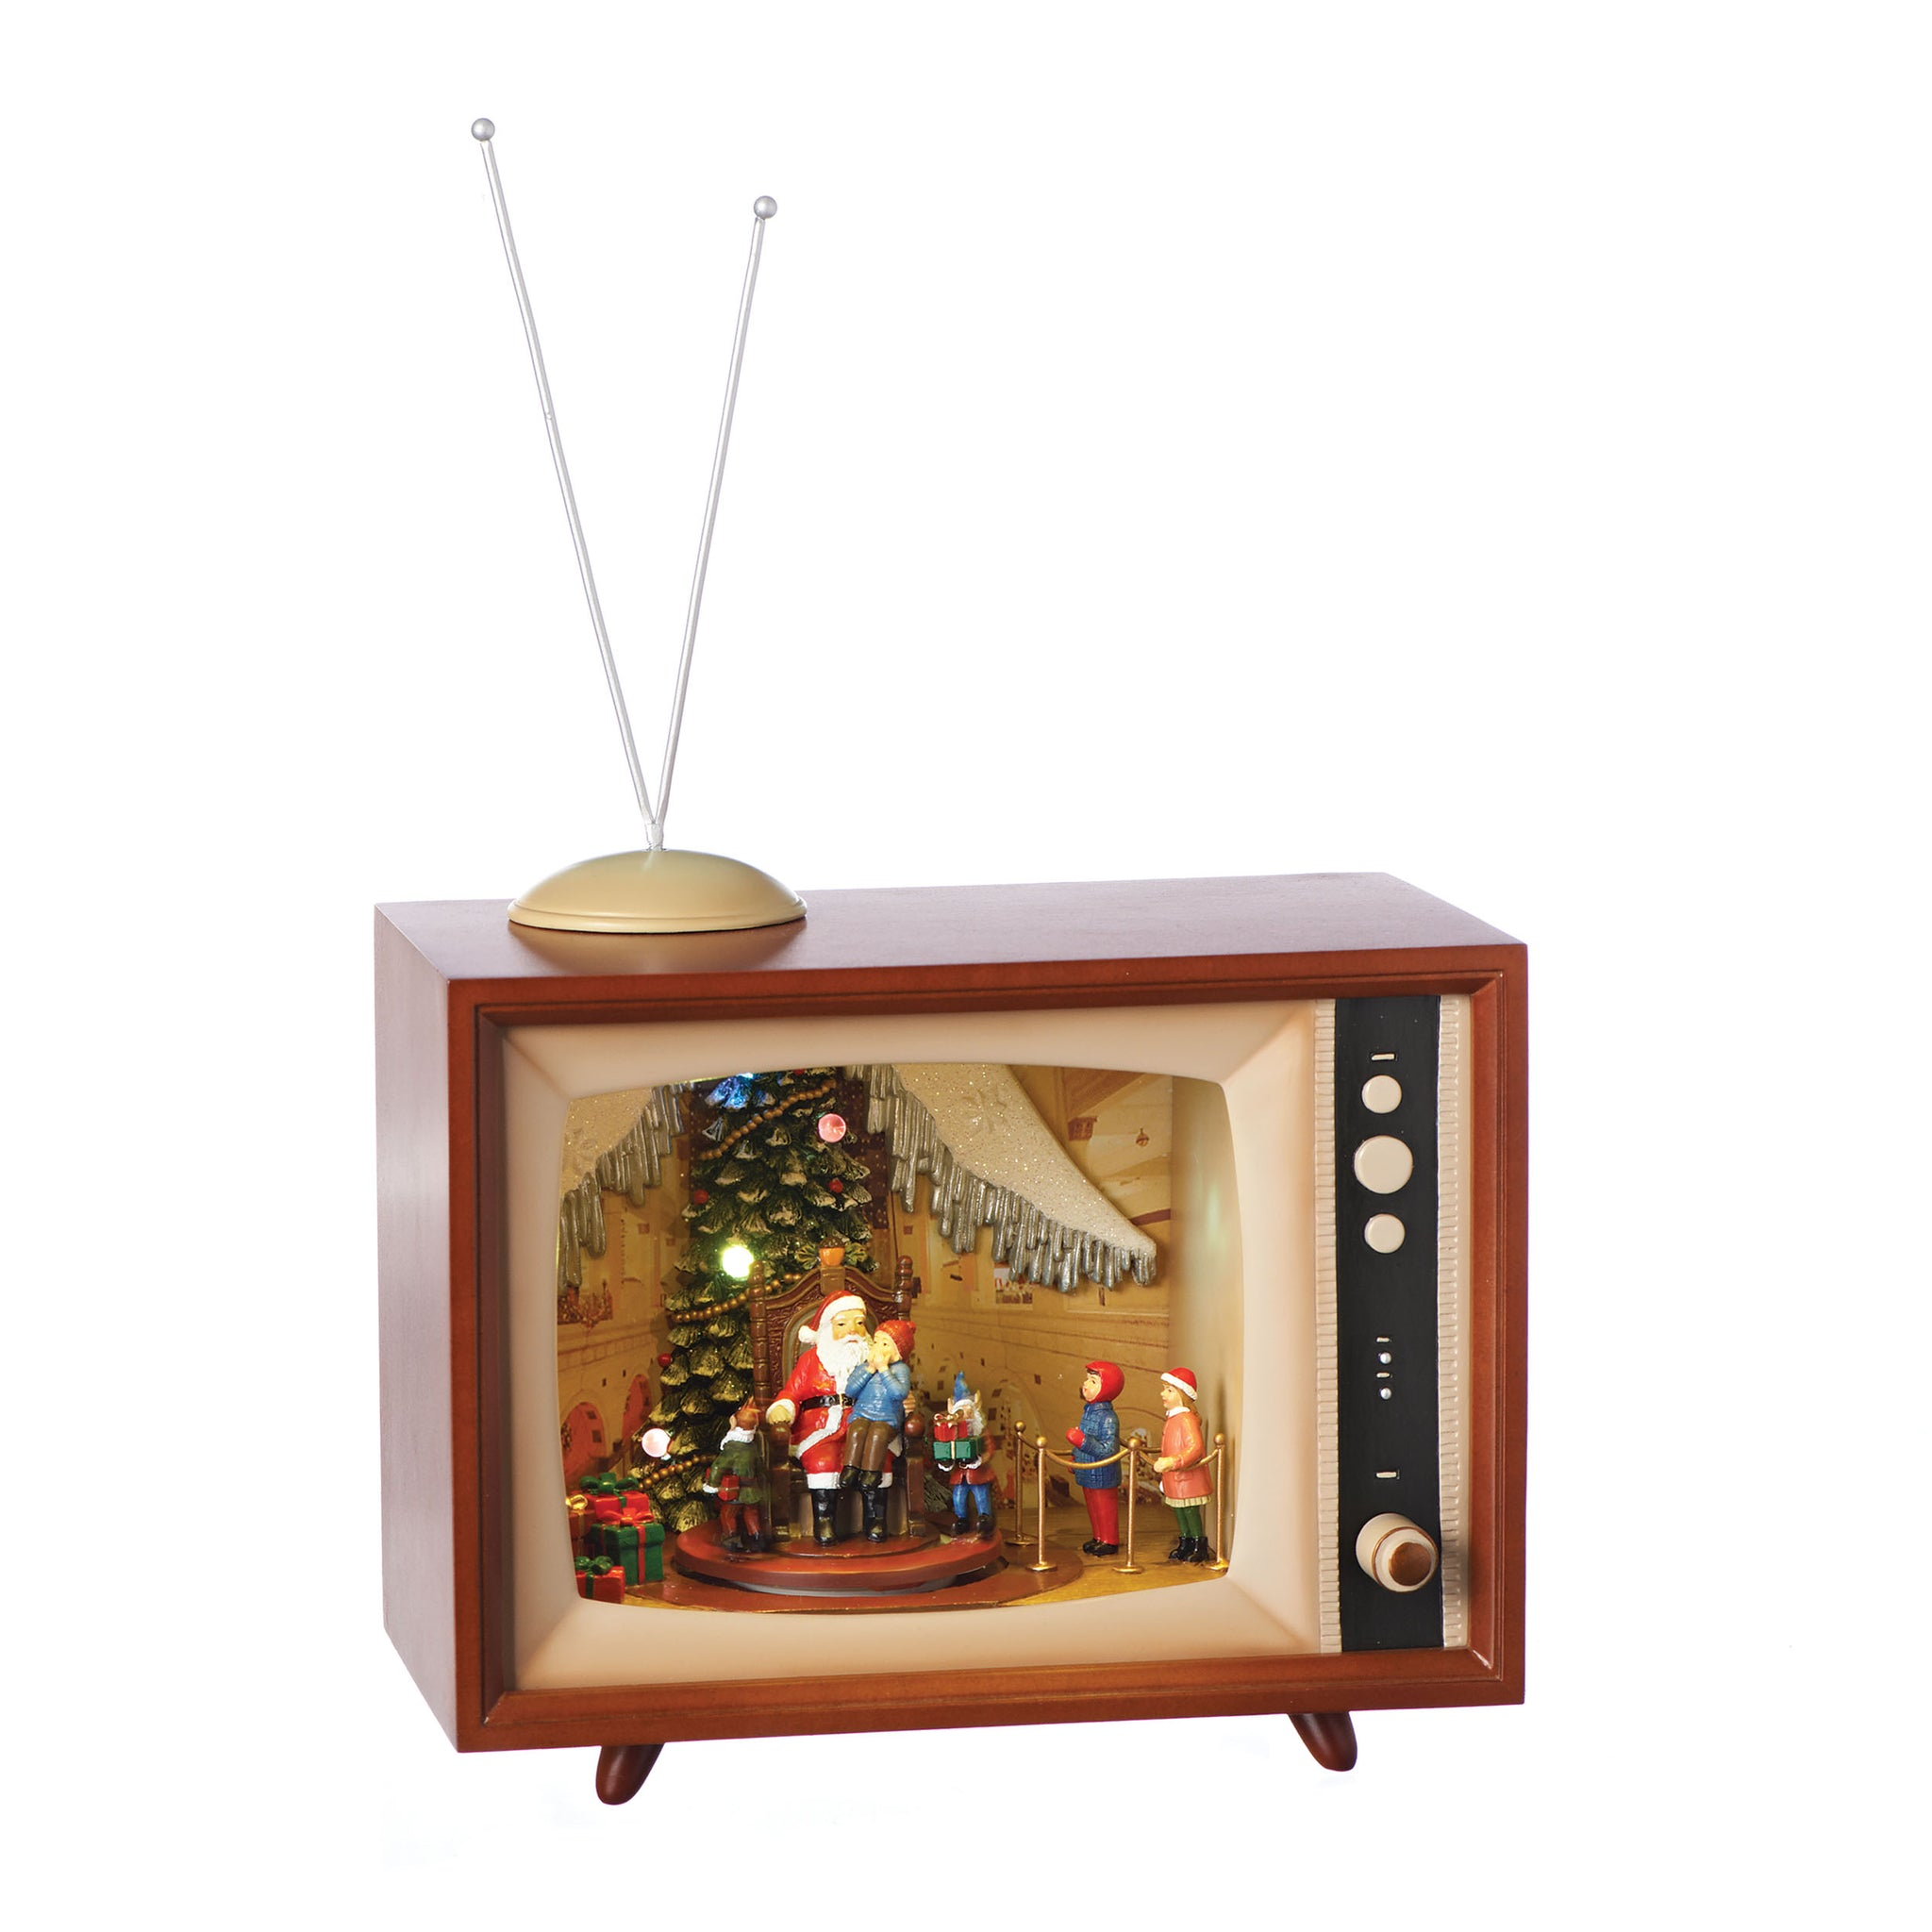 TV Sitting on Santa's Lap